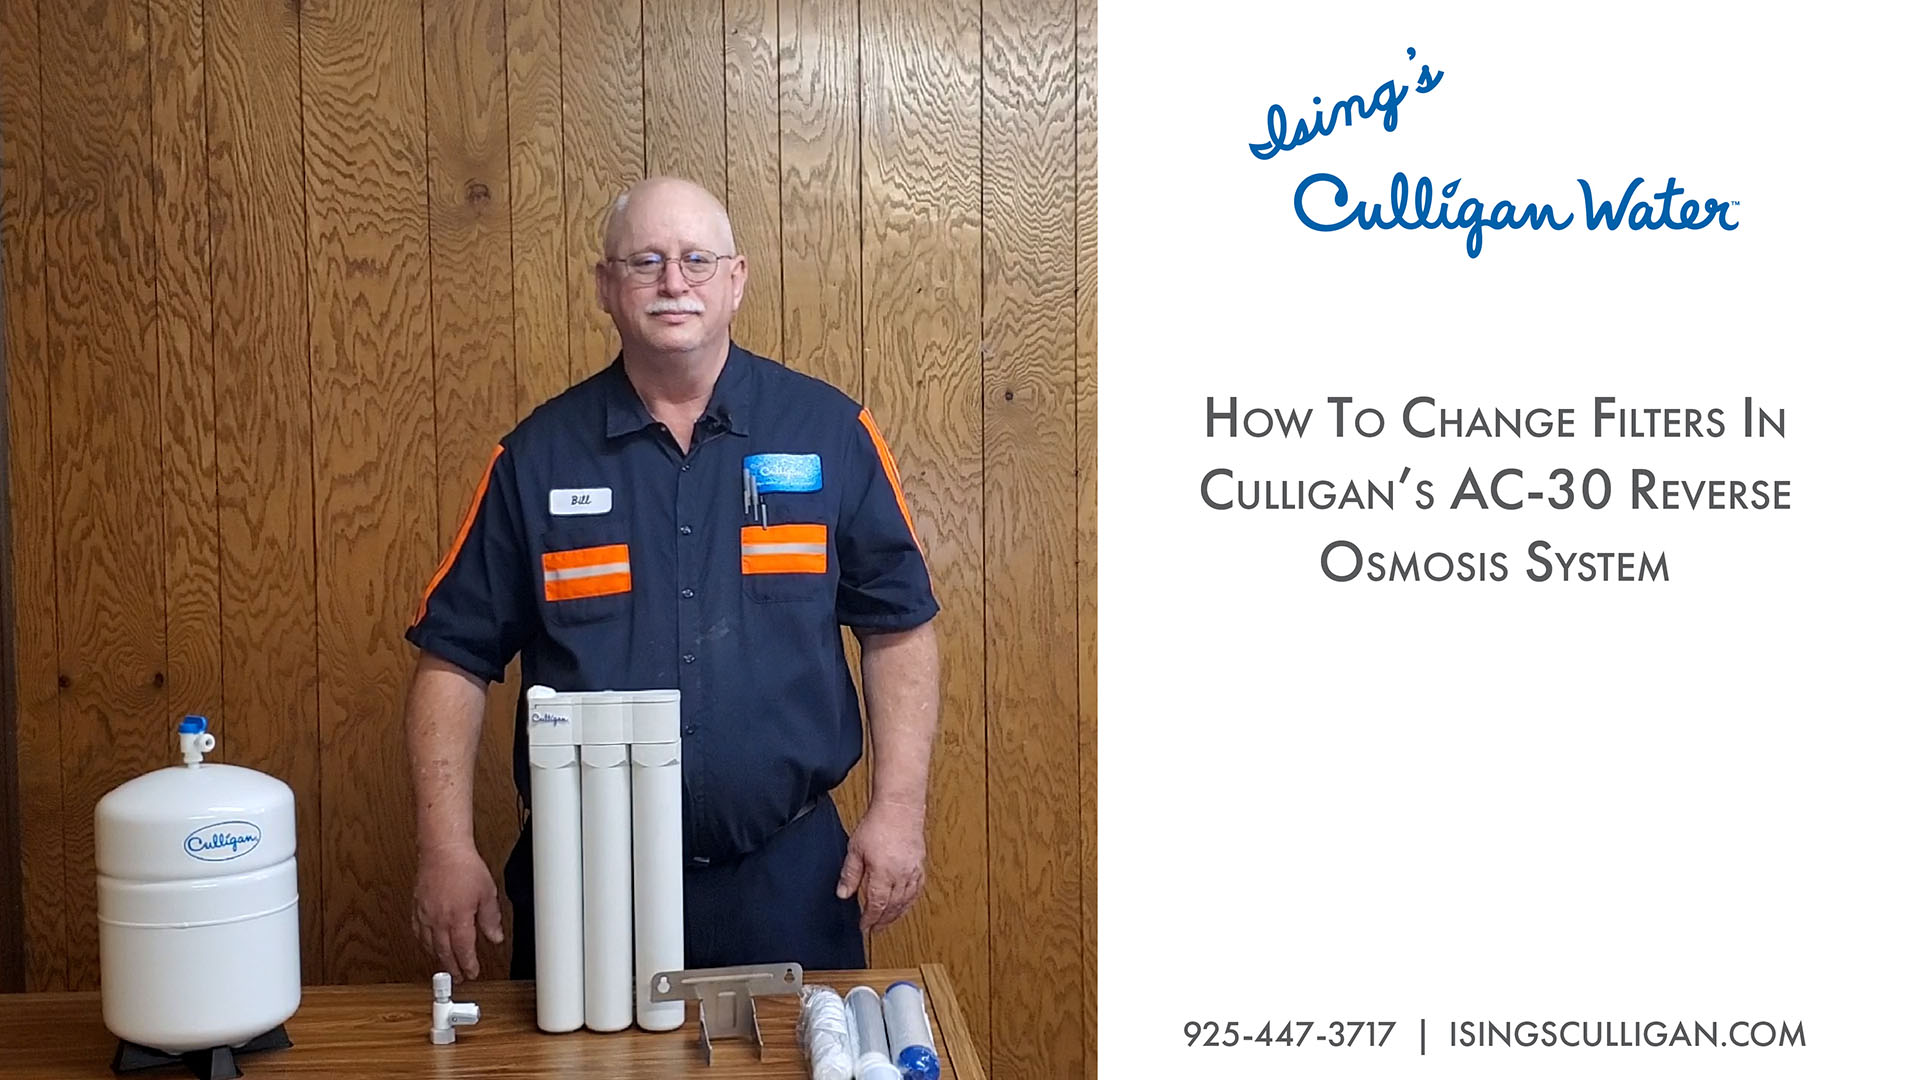 How to change filters in AC-30 Reverse Osmosis System